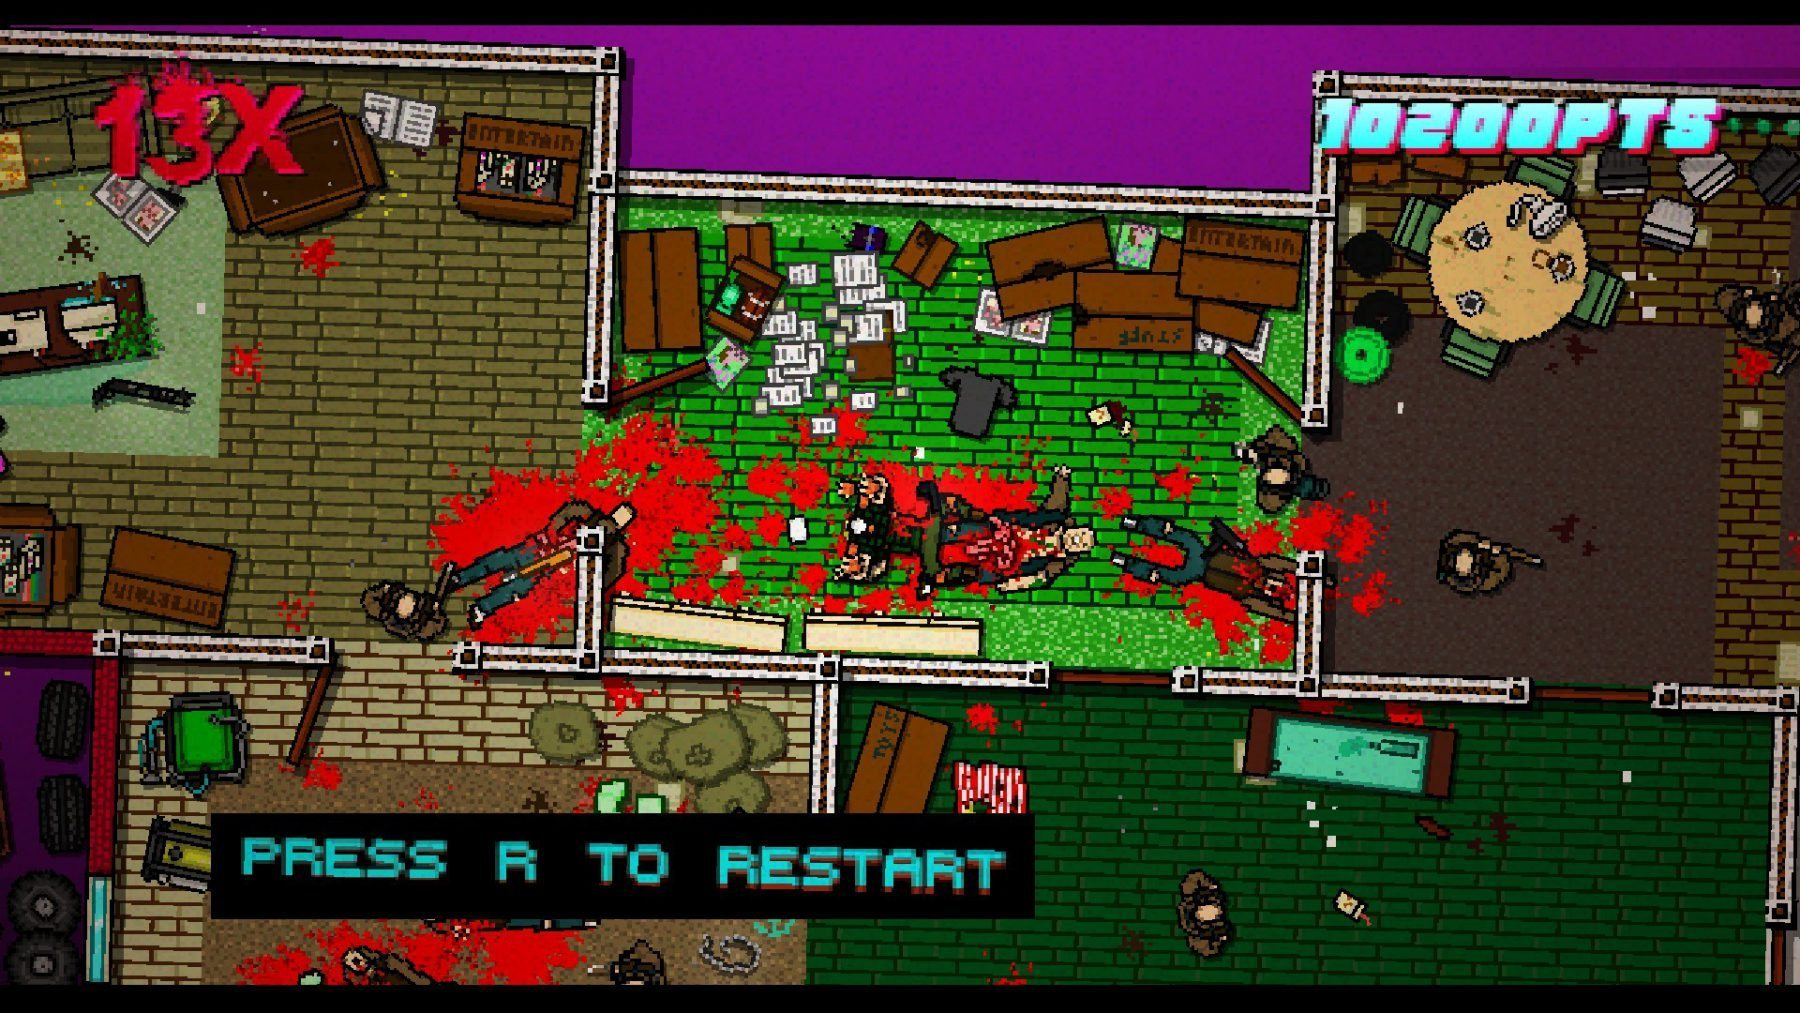 Hotline Miami 2 level editor